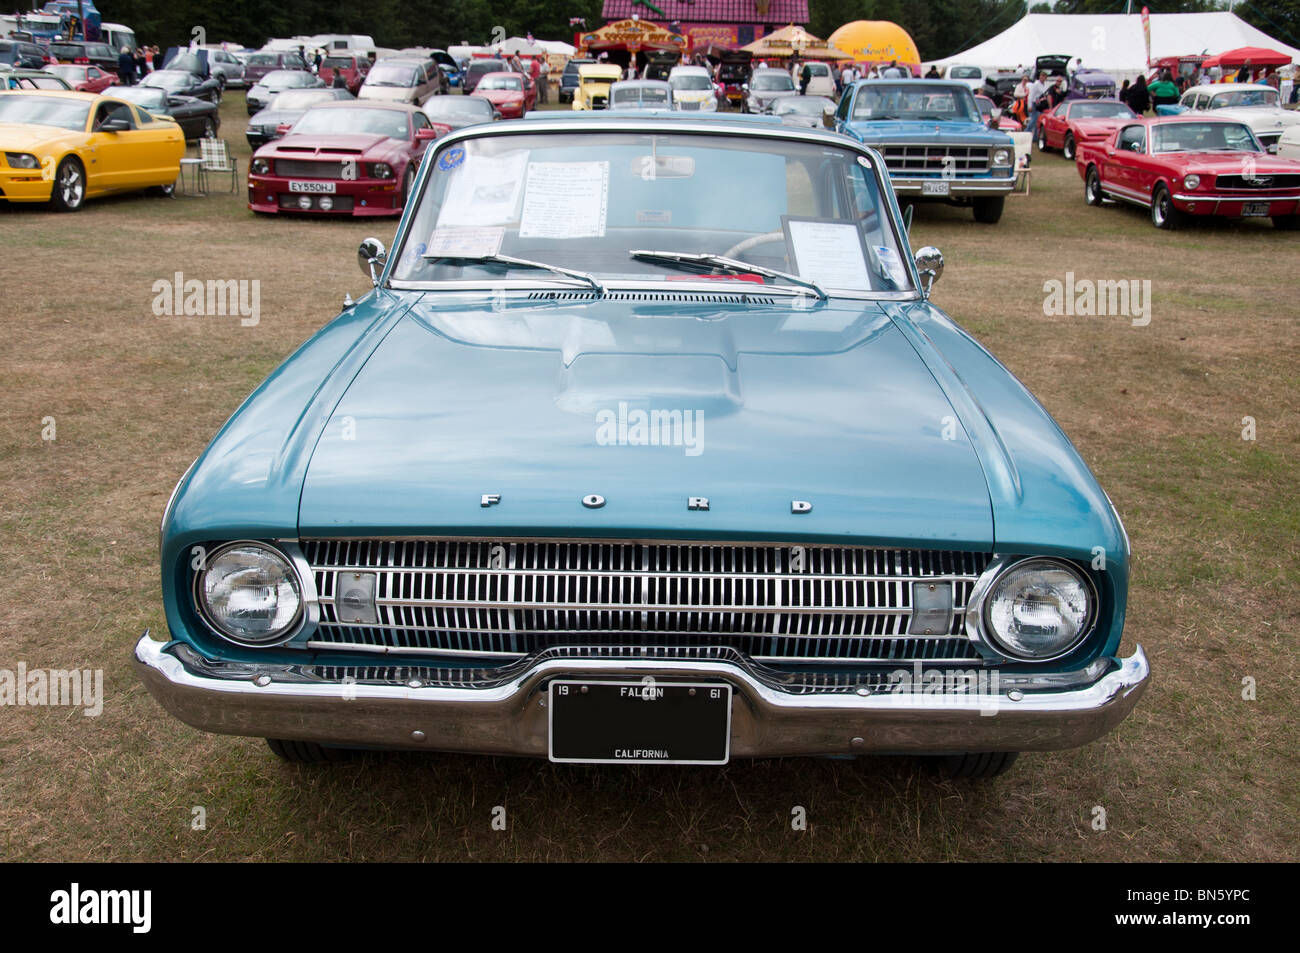 The front of a 1961 ford falcon car at an american car show on 4th july independence day in tatton park cheshire